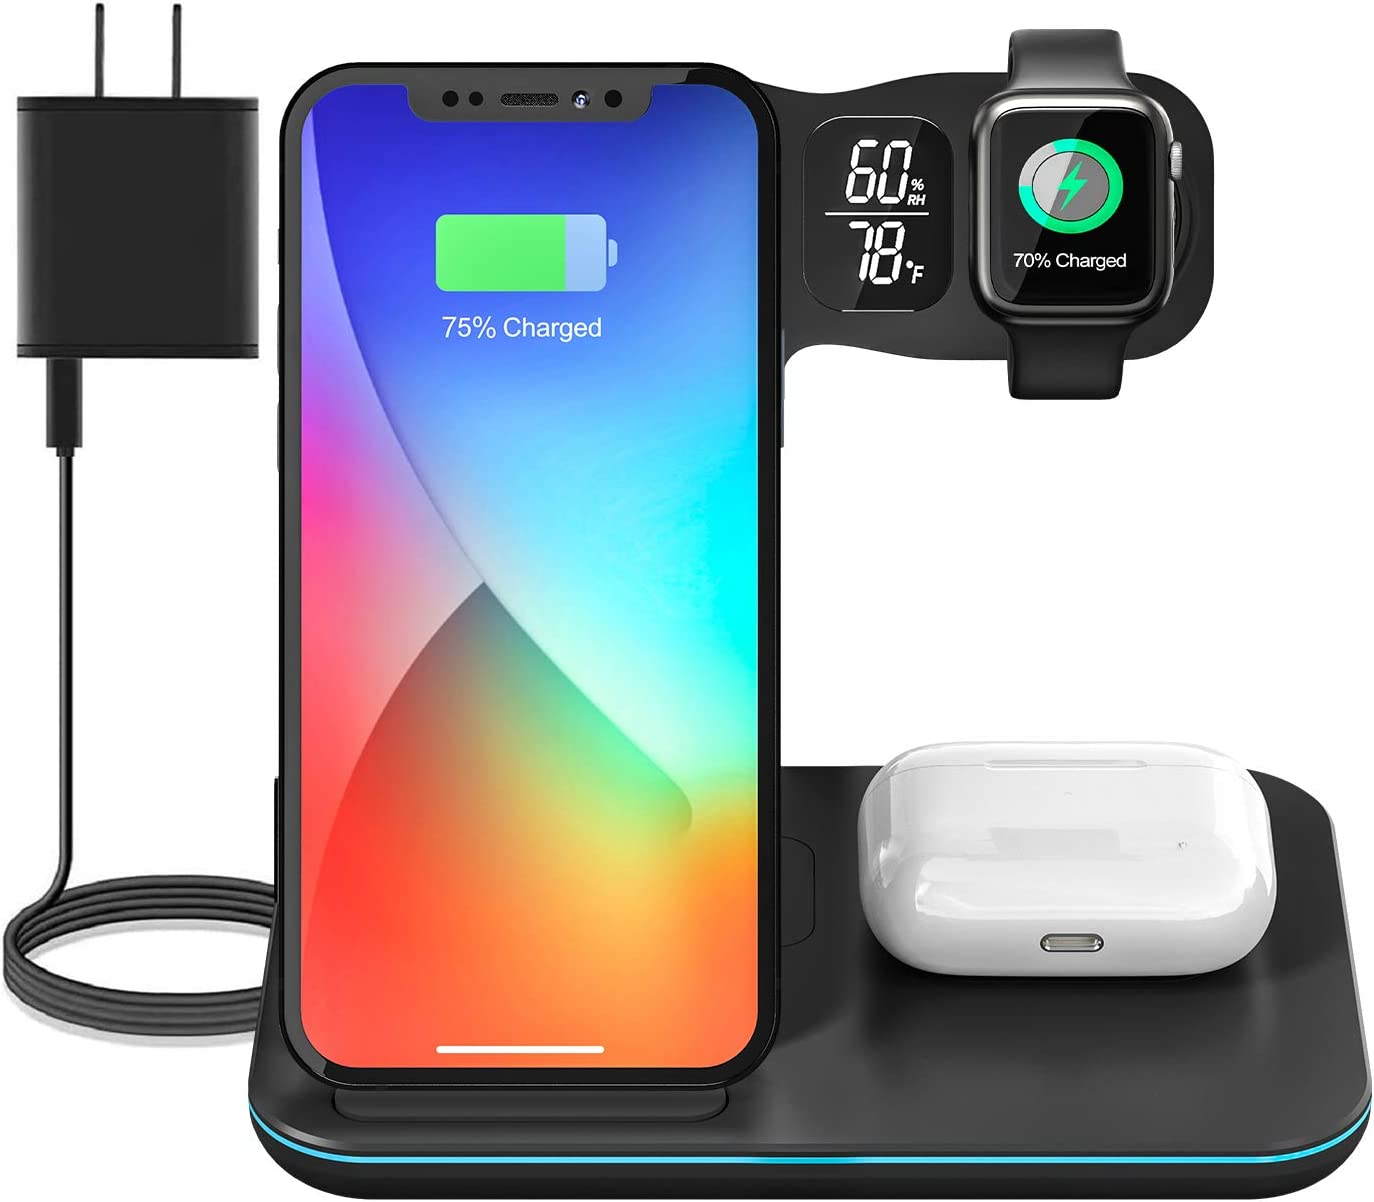 Wireless Charging Station, 5 in 1 Wireless Charger 15W Fast Charging Stand, Qi-Certified Dock with Temperature Humidity Display for iPhone 12/12 Pro Max/11 Pro,AirPods,Apple iWatch (Black)